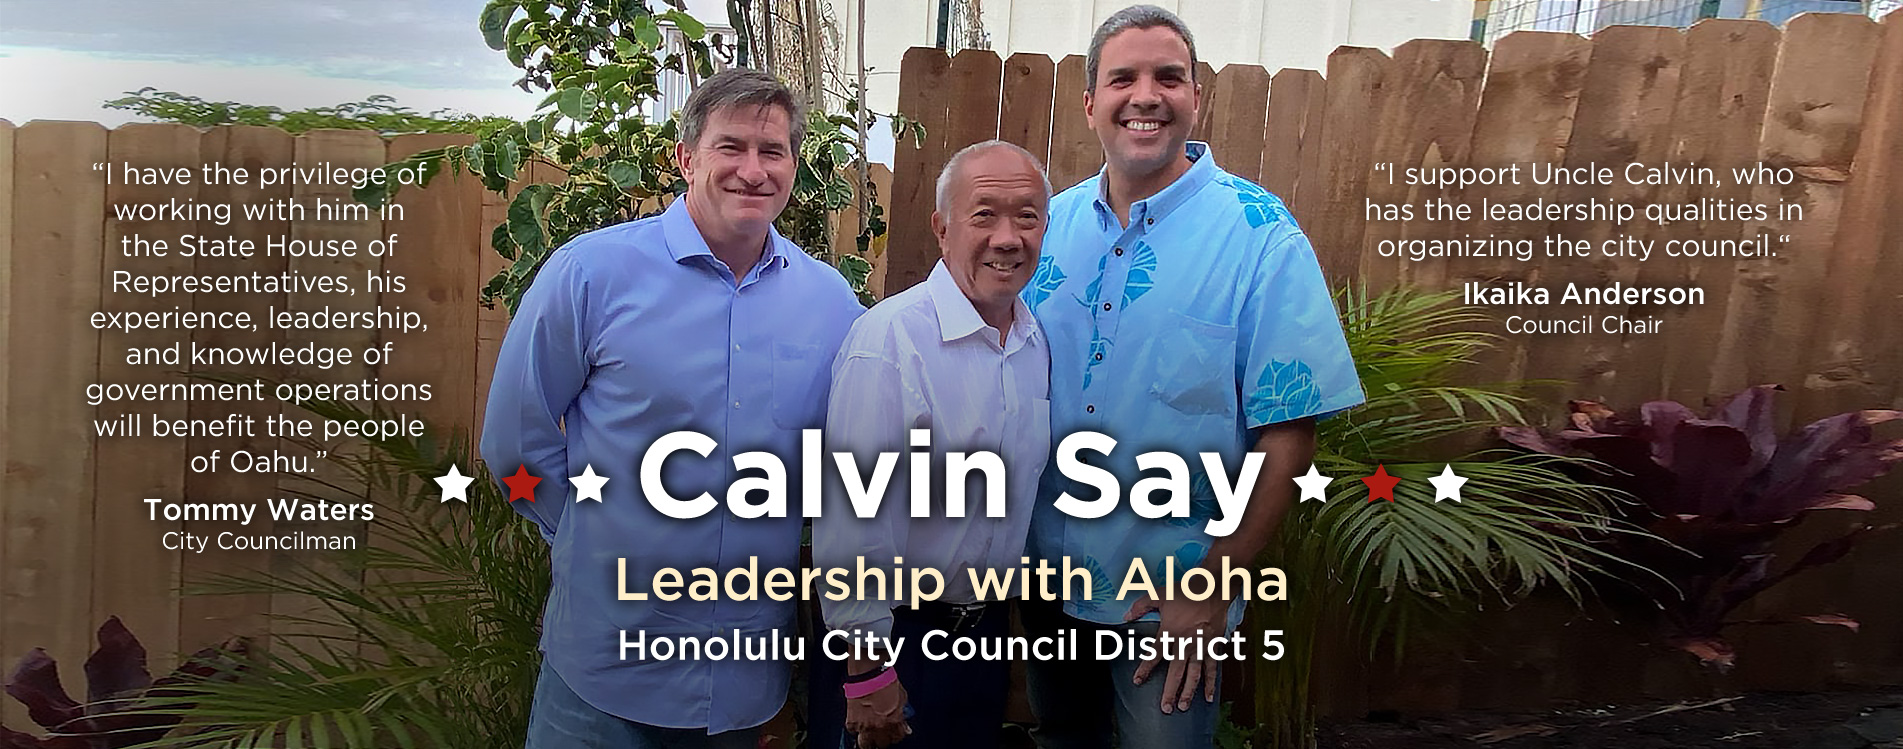 Honolulu City Council Chair Ikaika Anderson and Honolulu City Council Member Tommy Waters endorses Speaker Emeritus Calvin K.Y. Say for Honolulu City Council District V, which consists of Kaimuki, Kapahulu, Palolo Valley, St. Louis Heights, Manoa, Moiliili, McCully, and portions of Ala Moana, Kakaako, and Makiki.